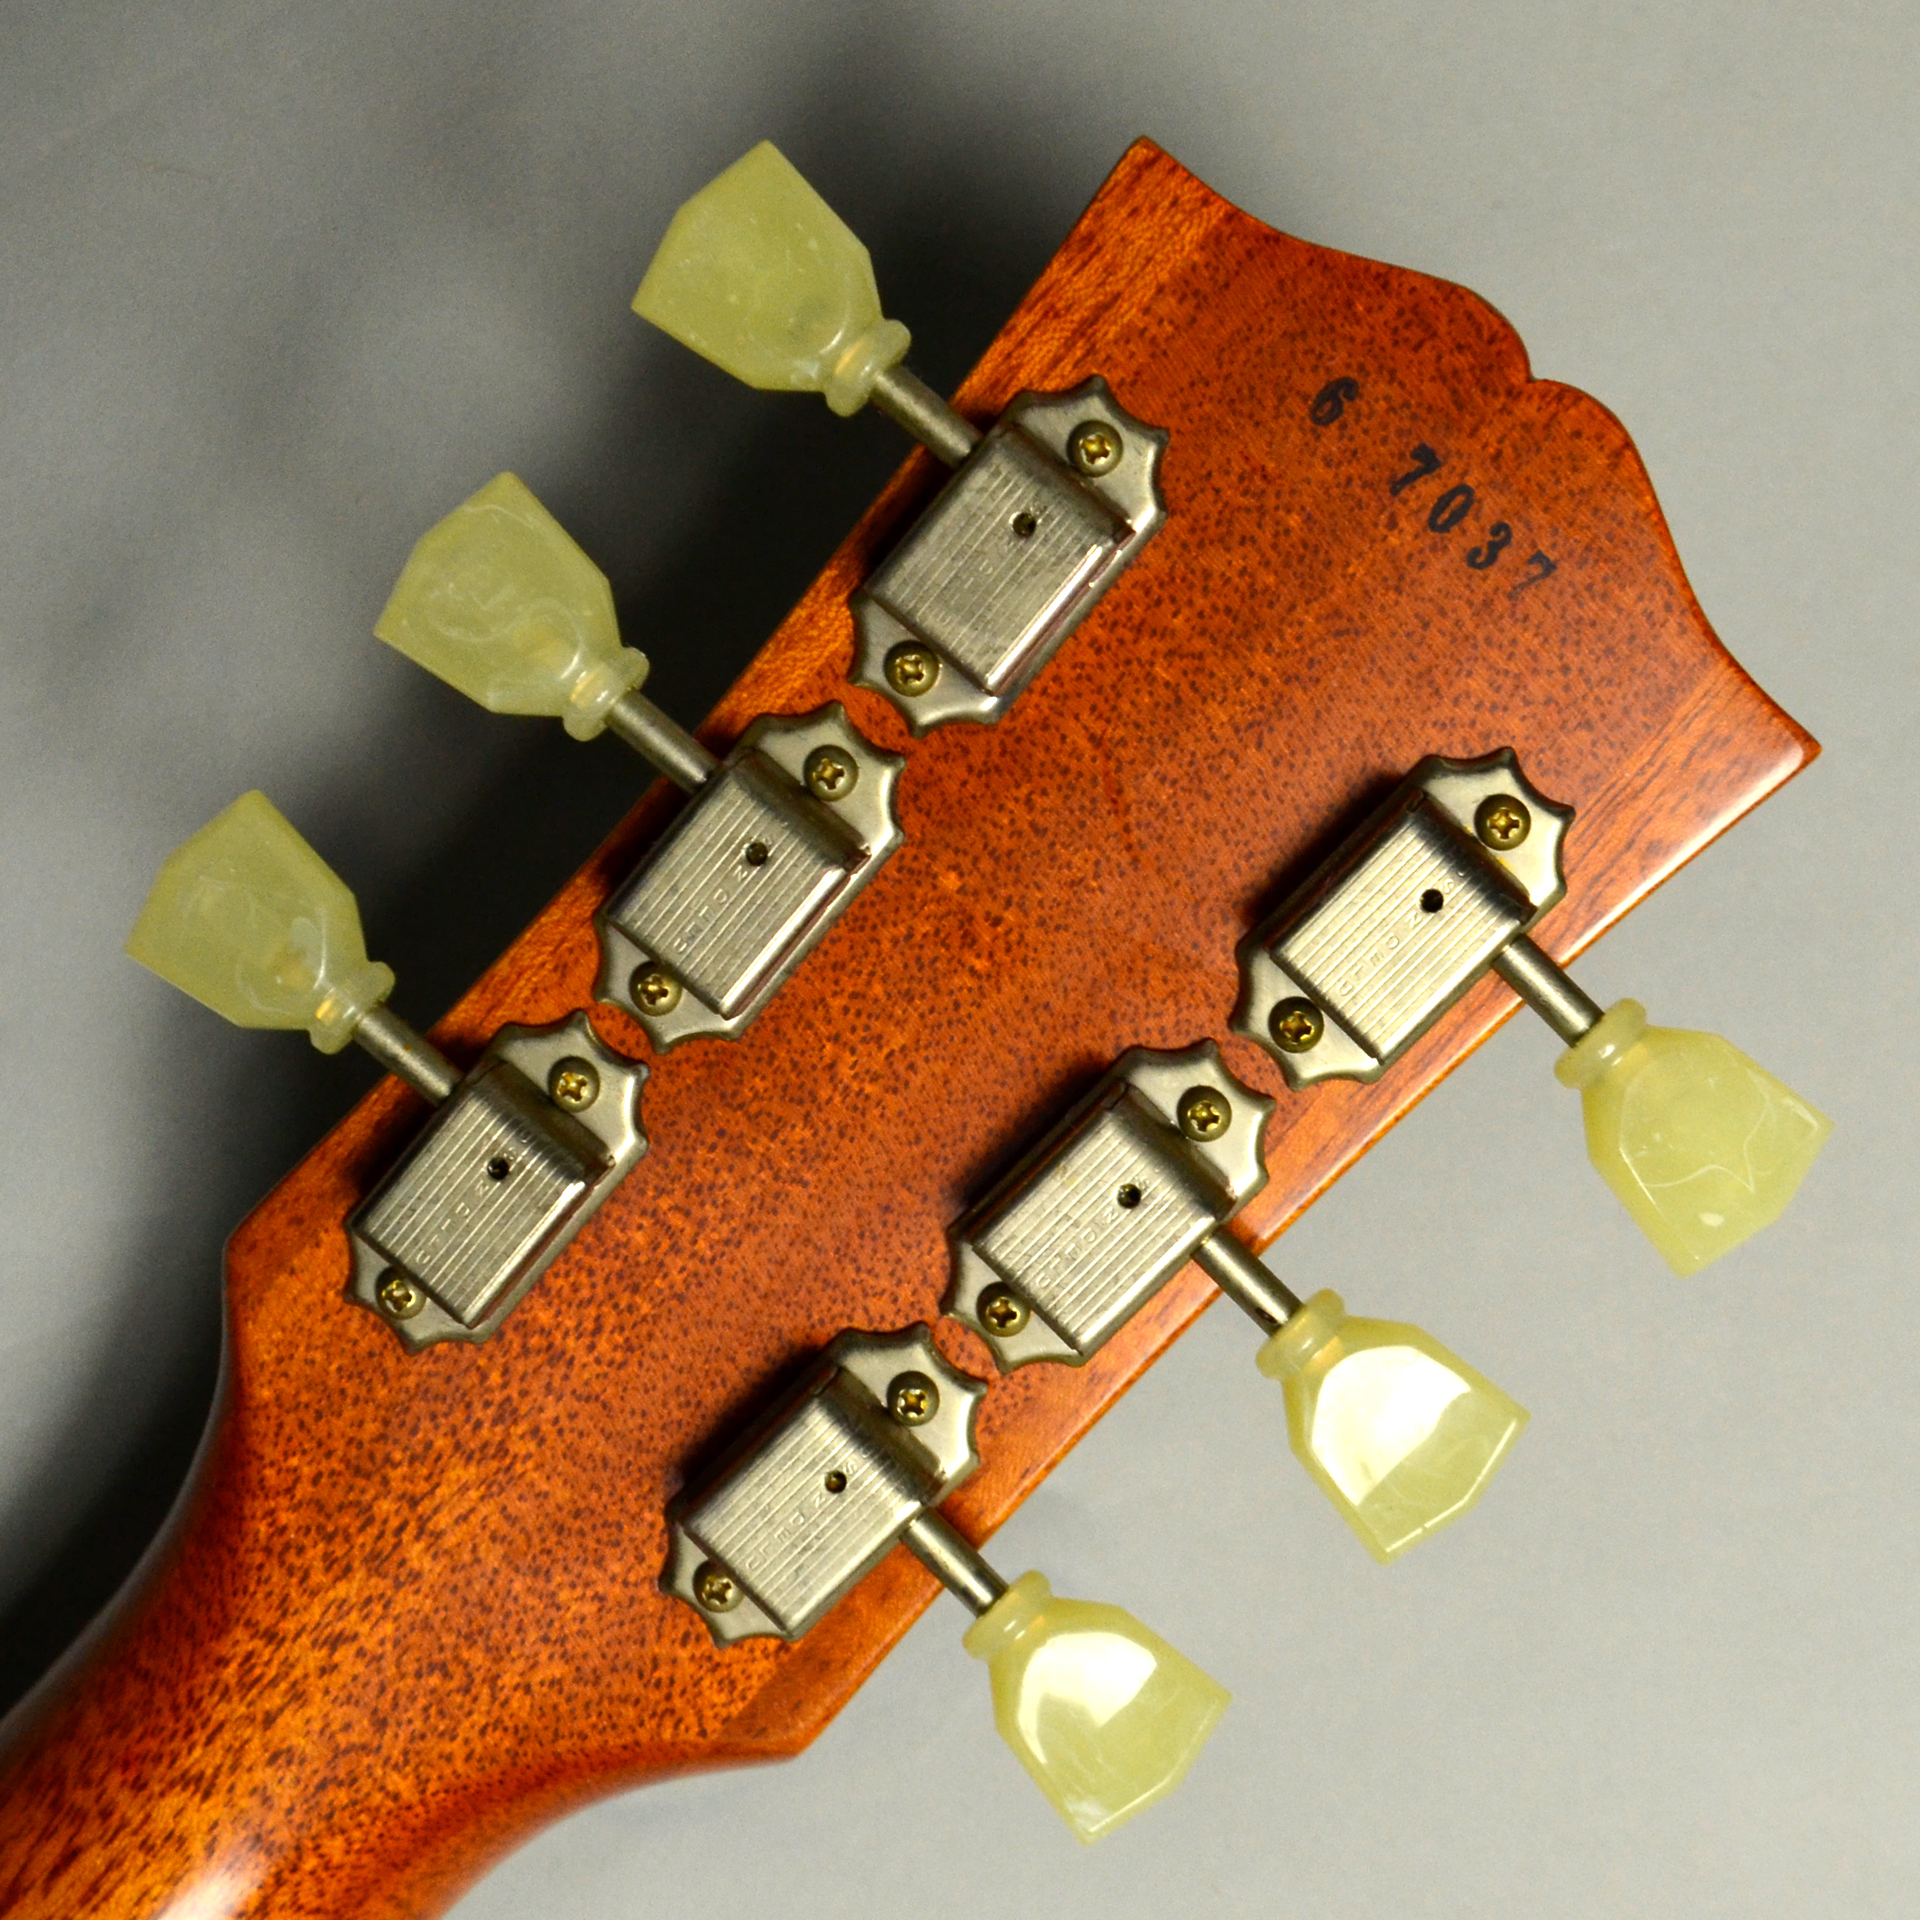 1956 Les Paul Standard Reissue VOS PSL Antique Goldのヘッド裏-アップ画像